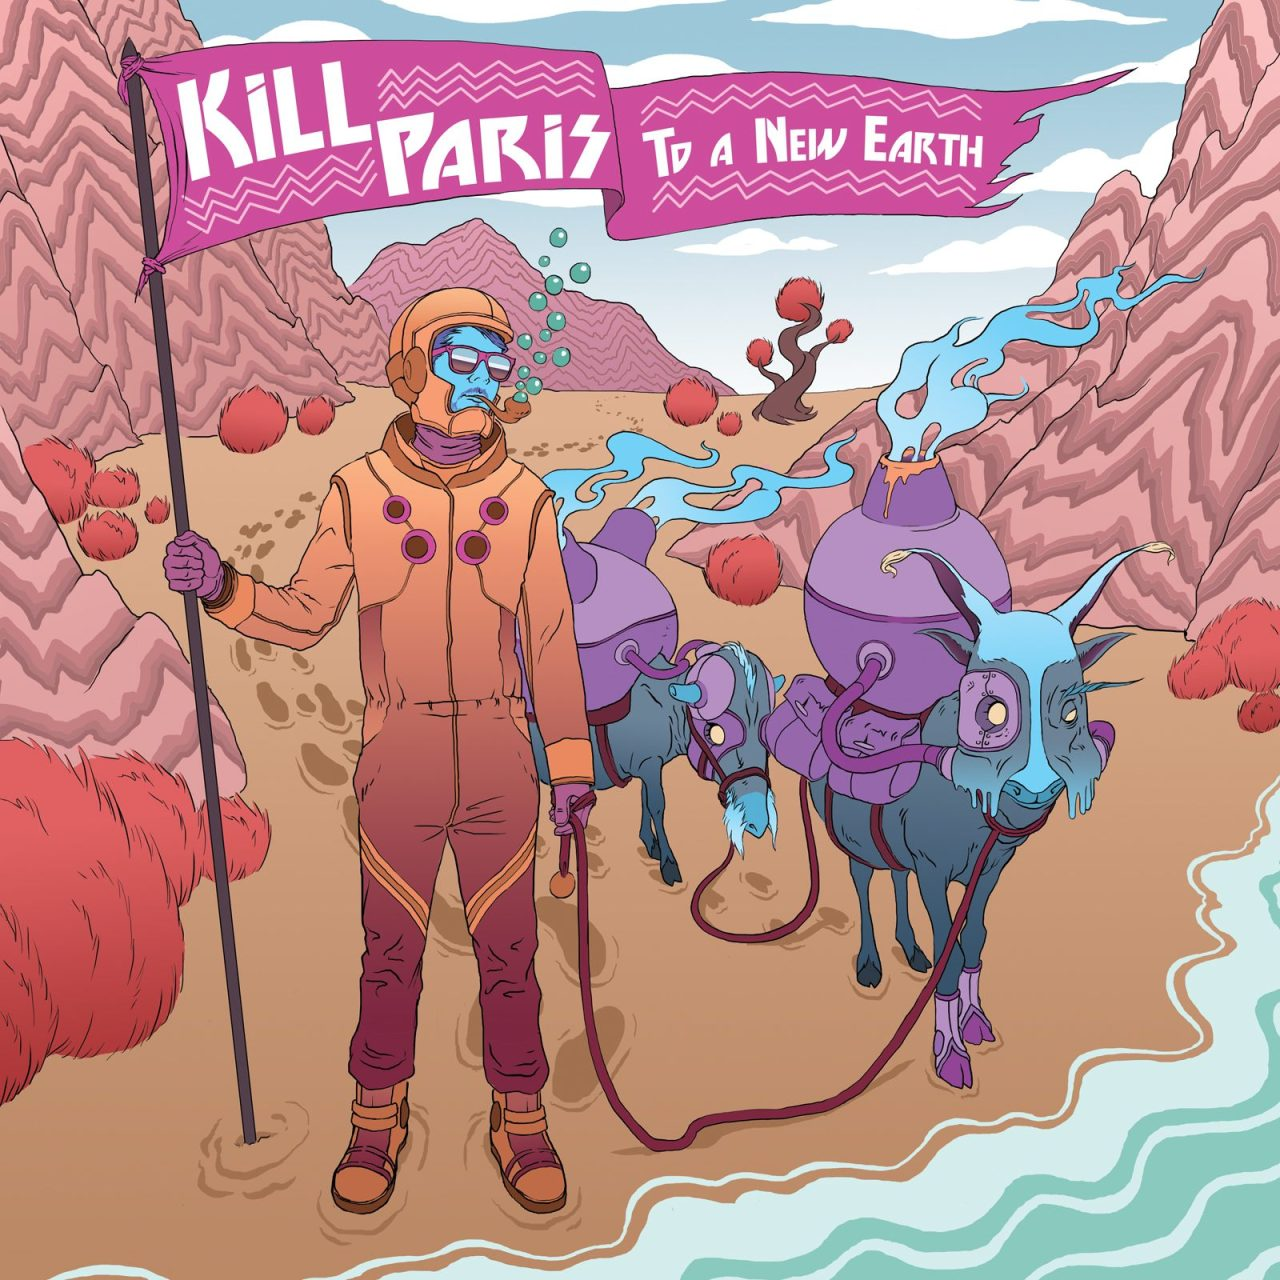 LA-based DJ/producer Corey Baker aka Kill Paris is set to release his upcoming EP To A New Earth on 02.26 via Skrillex's OWSLA. Baker, never one to align with any singular genre, flaunts his powerful new material with the 9-track recording, his 1st on OWSLA, that pulls from influences ranging from funky electro to nu-disco + dubstep. To A New Earth divulges in rhythmic yet pulsating territories while atmospheric interludes within the songs deviate from EDM's ever-present build-up-to-the-drop aesthetic. To A New Earth includes remixes from big time industry producers Gramatik, Griz, K Theory, Candyland, + Robert Delong.  Slap Me (Griz Remix) // download